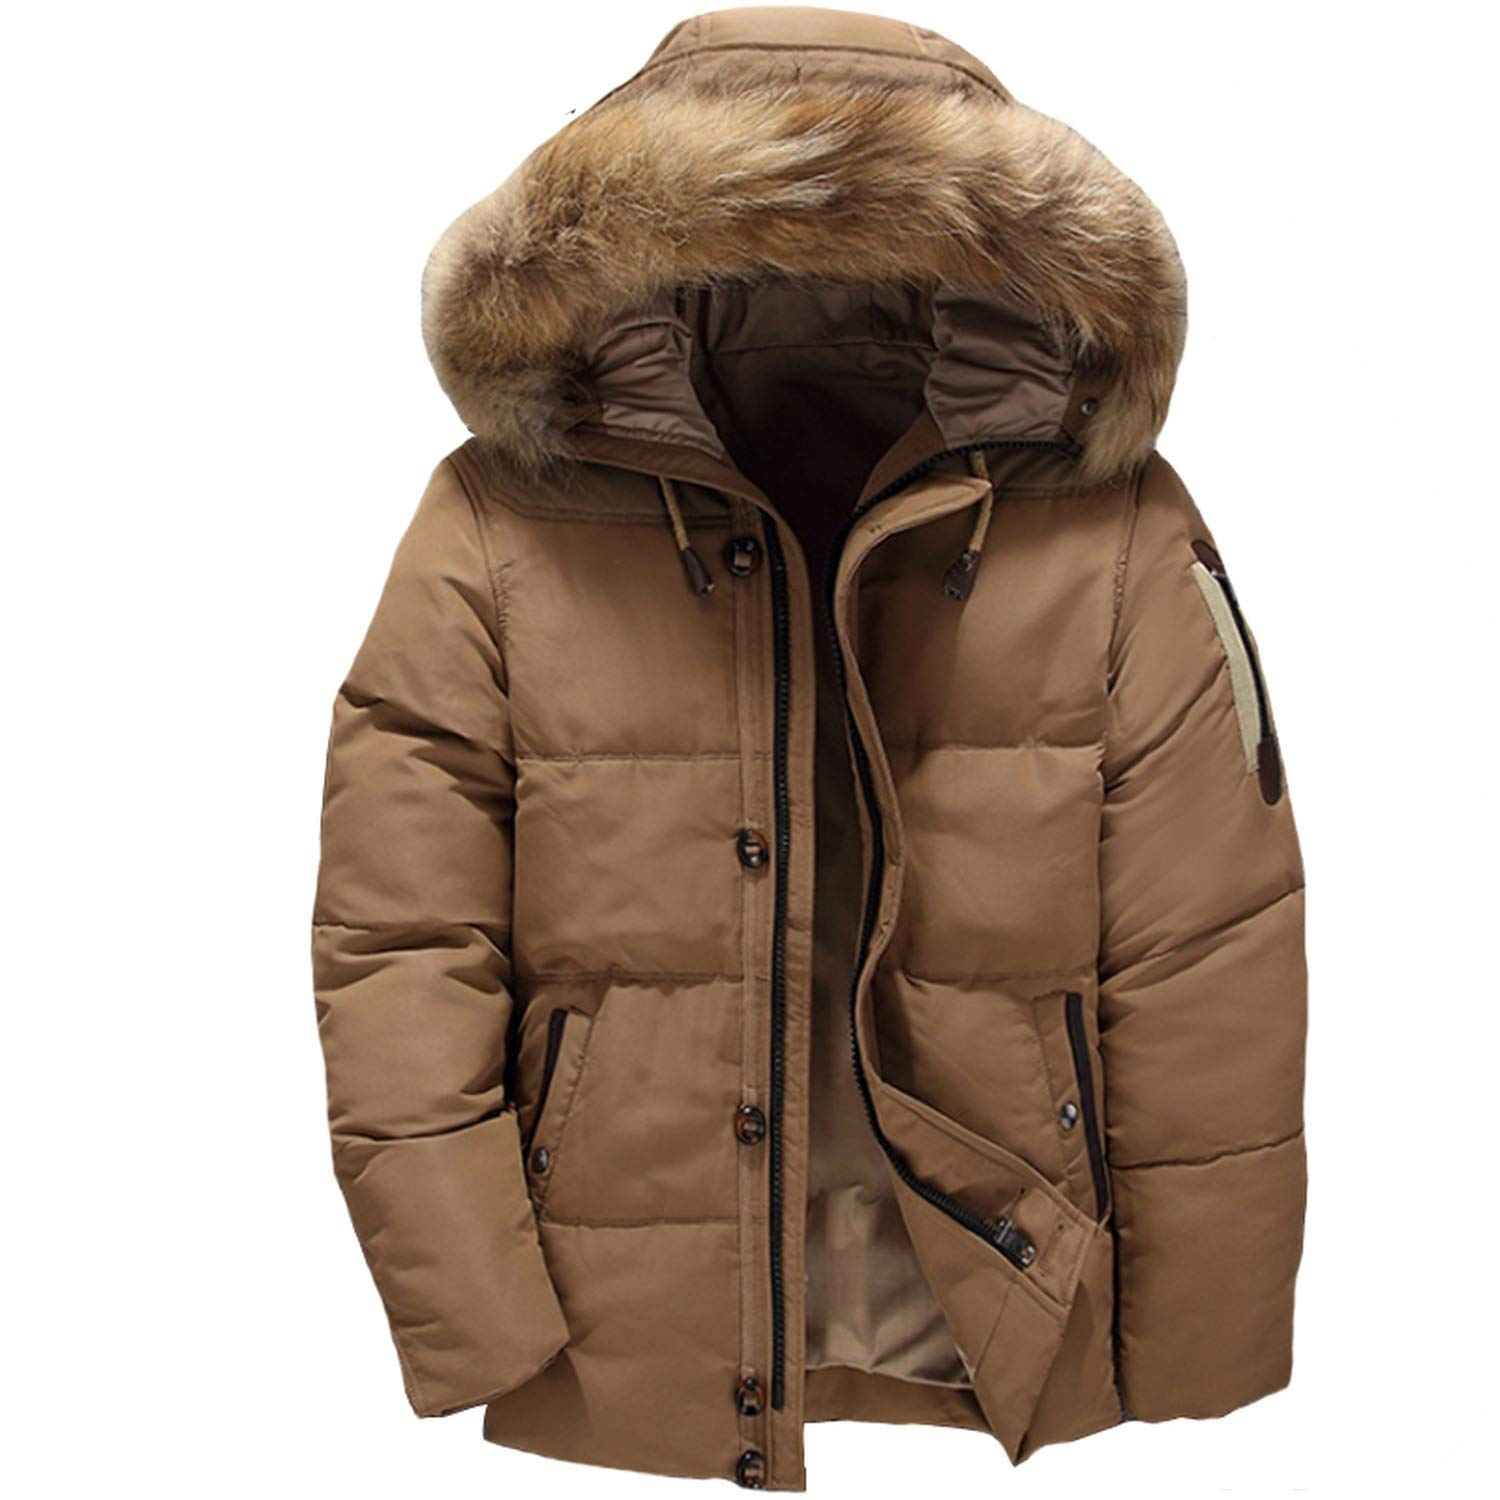 Men Coat Winter Abrigos para Men Hooded Fur Collar Down Coats at Amazon Mens Clothing store: